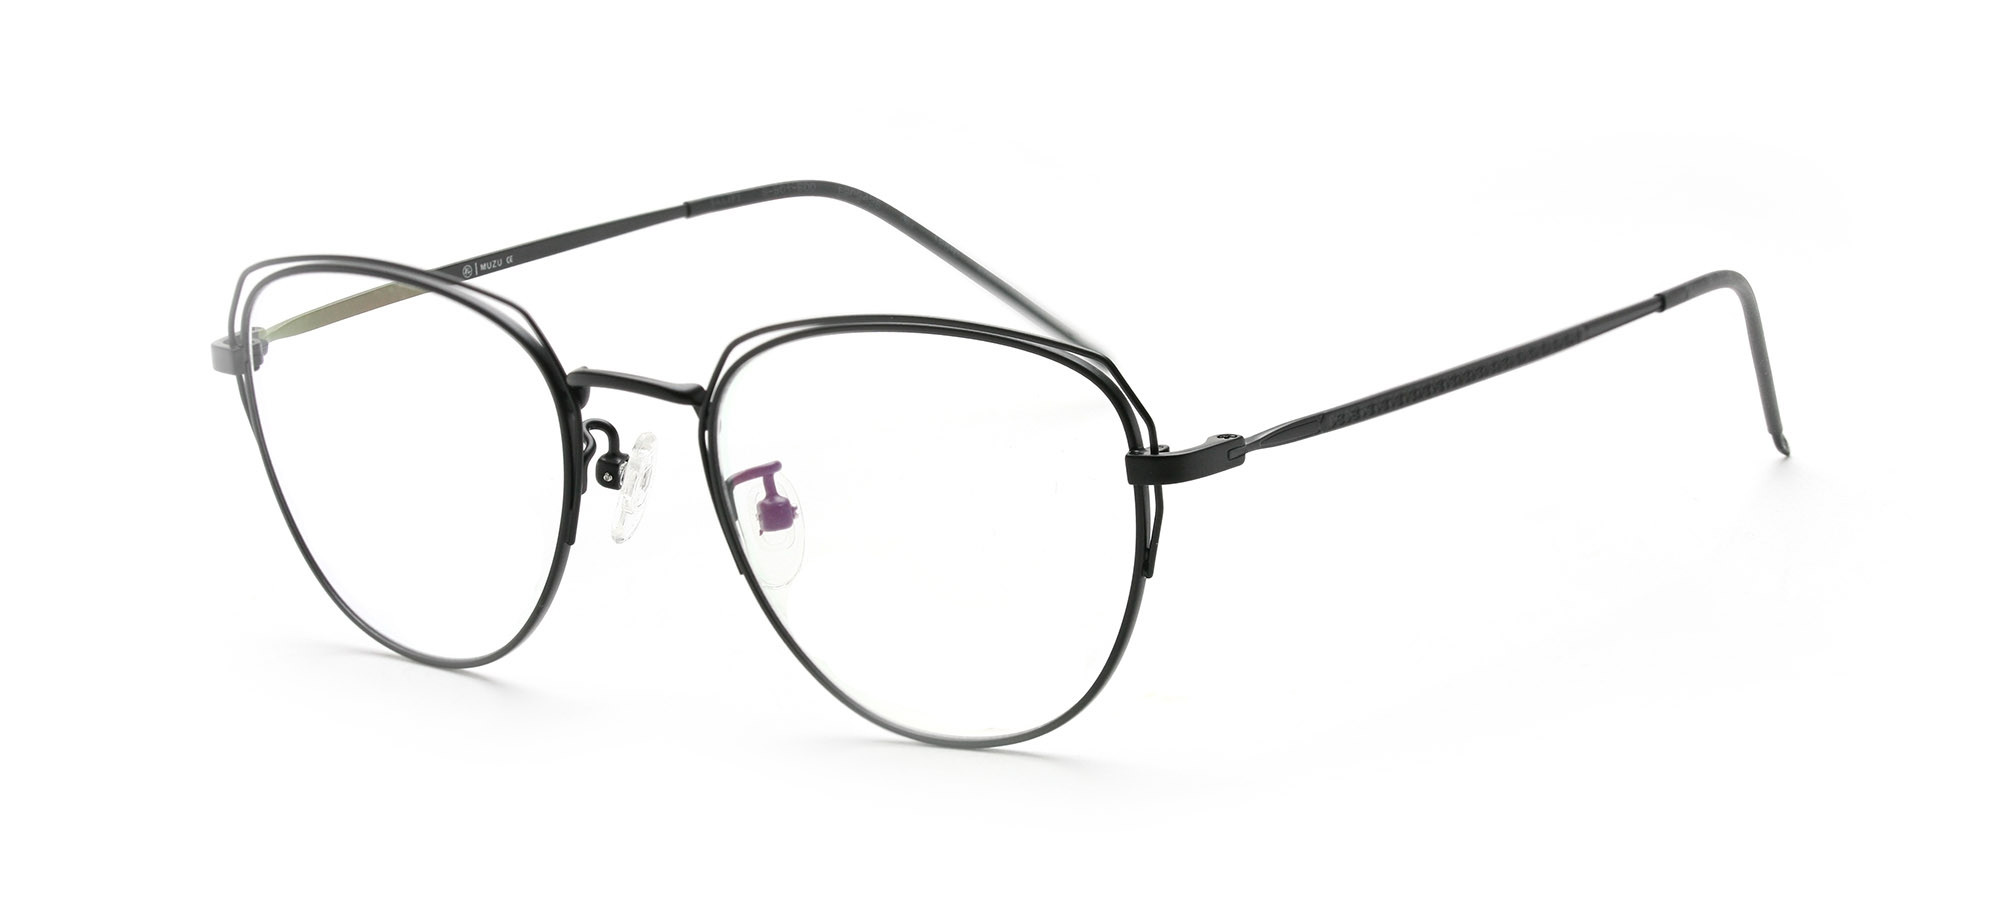 Unisex Eyeglasses Clearance FS16395-B for Adults